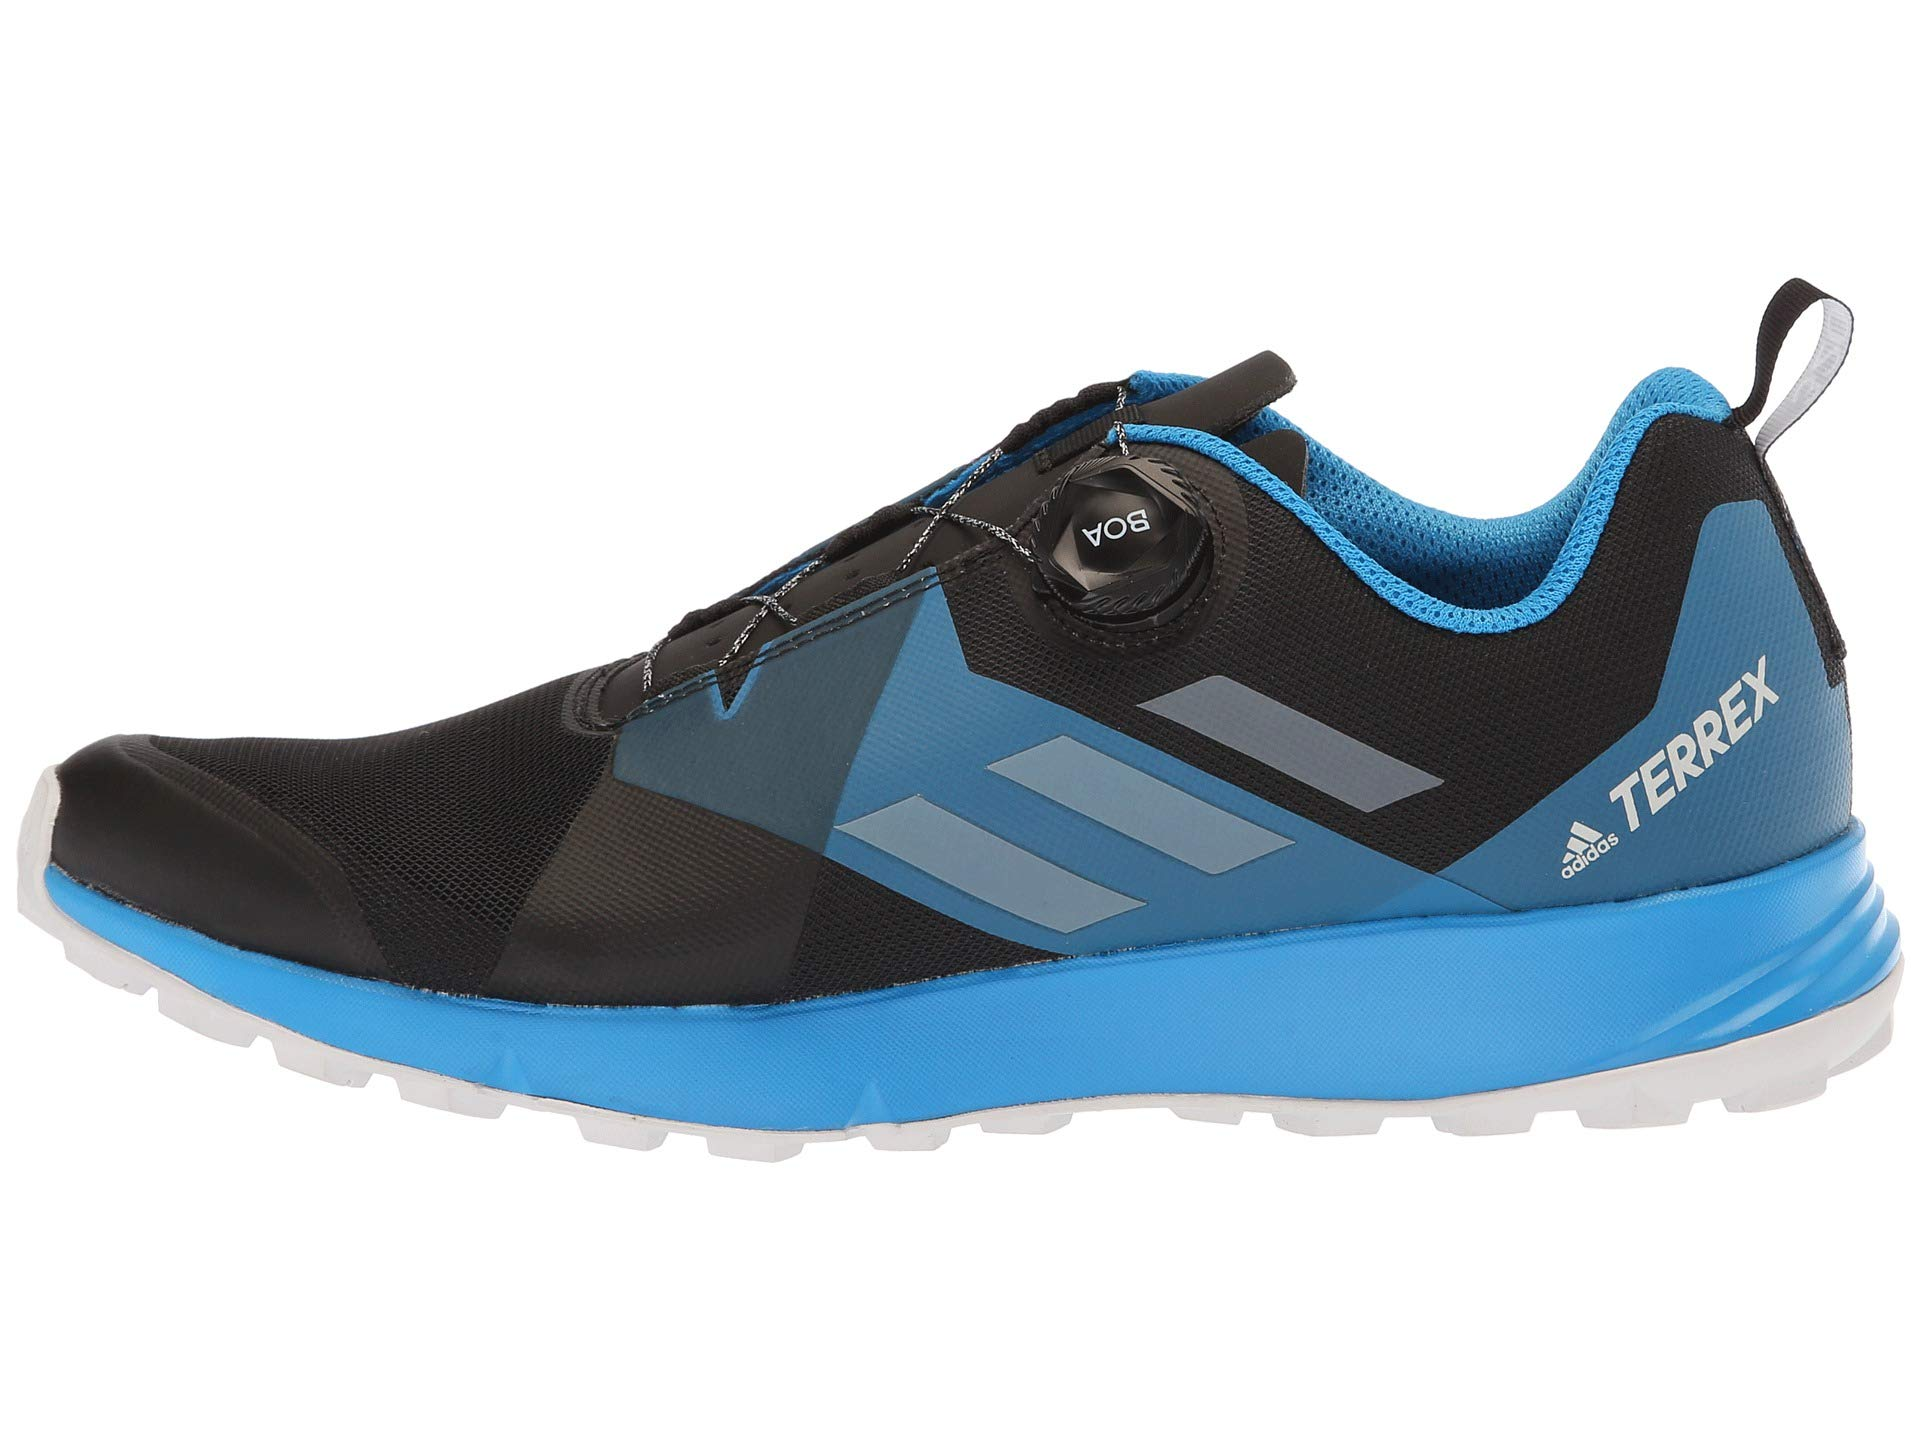 reputable site d5c2a 5e974 Best Adidas Running Shoes   Adidas Shoe Reviews 2019